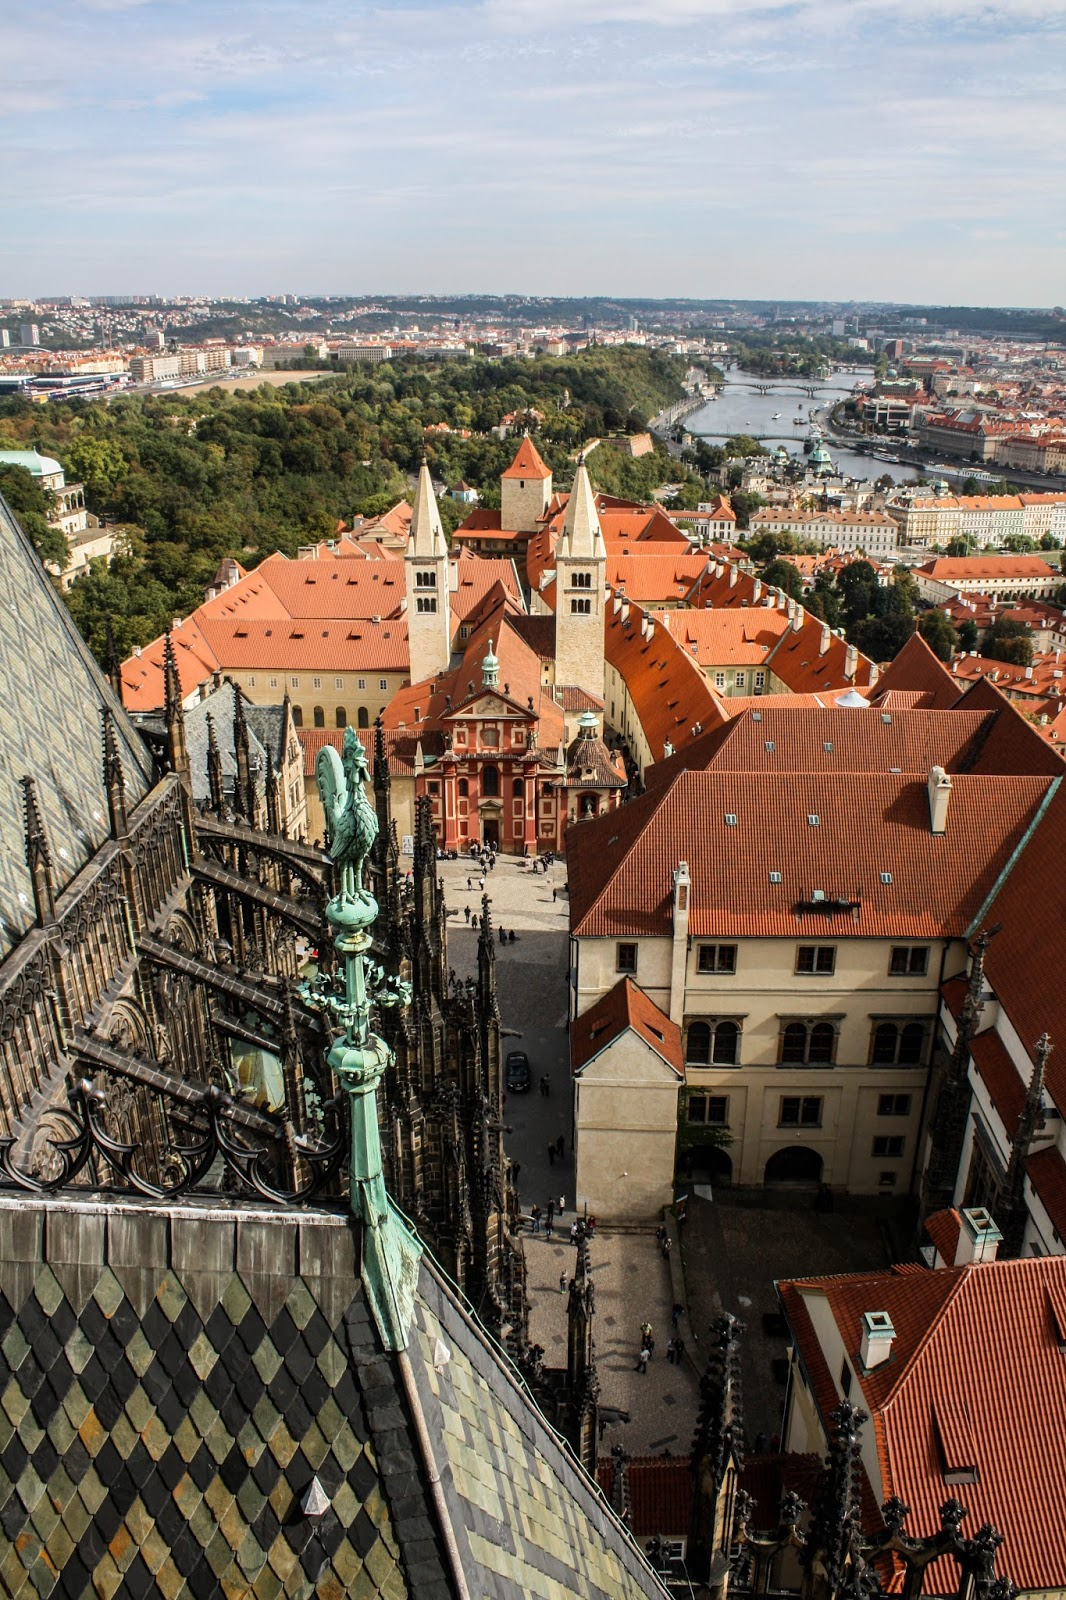 10 places I'd visit if I won't the lottery: Czechia Edit